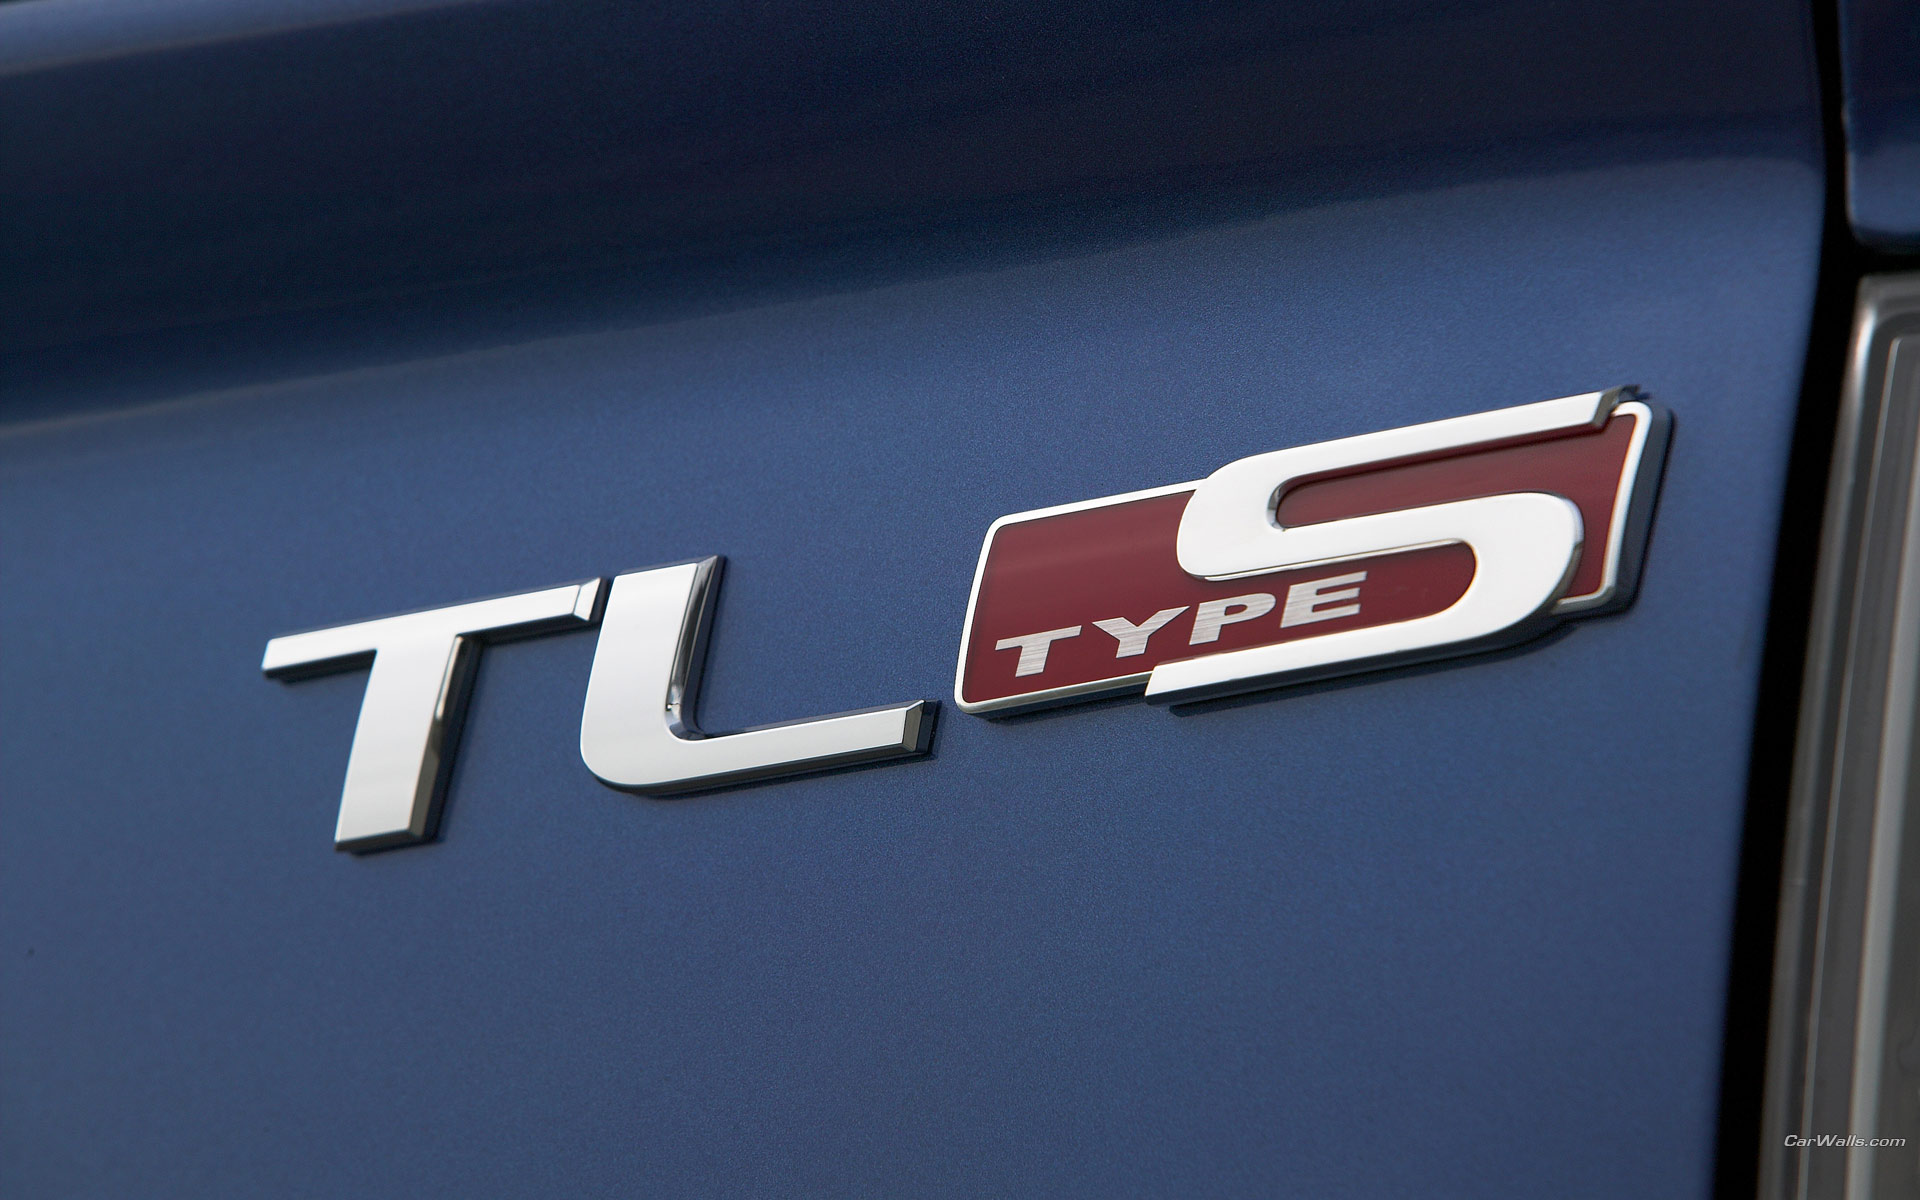 Download High quality Acura TL type S logo Acura Wallpaper 1920x1200